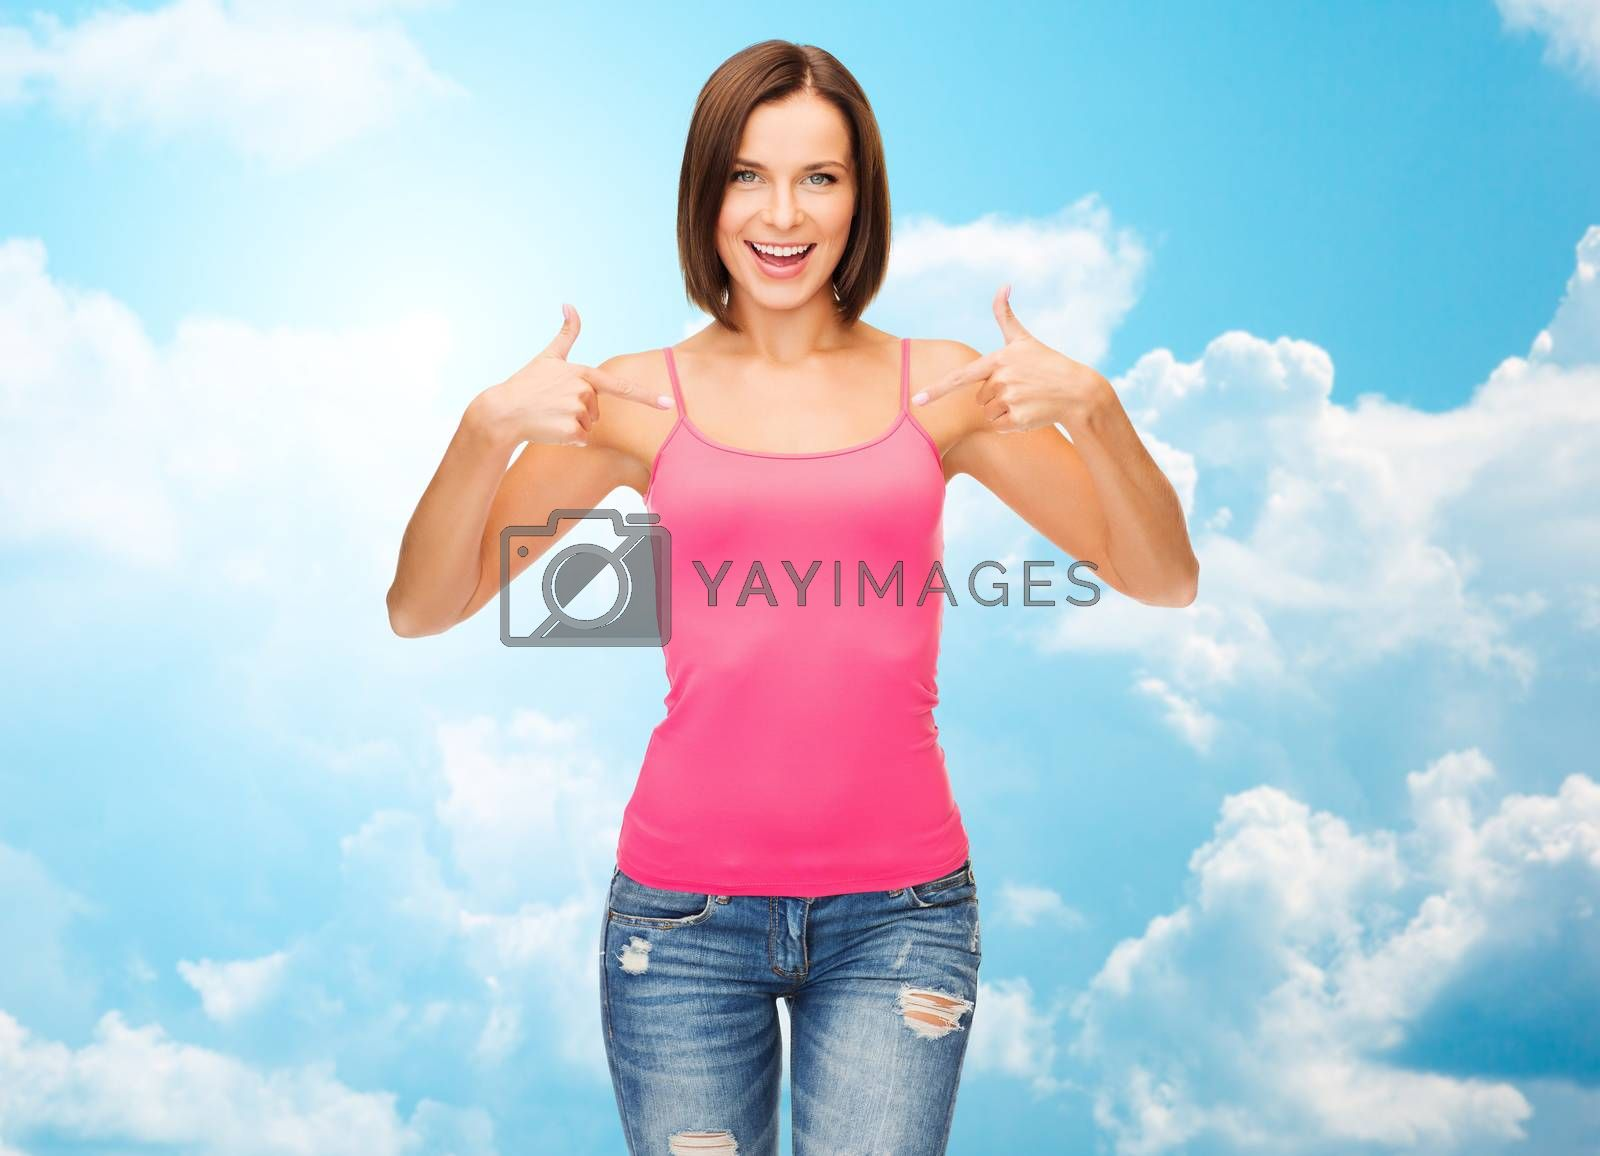 people, advertisement and clothing concept - smiling woman in blank pink tank top pointing fingers to herself over blue sky with white clouds background